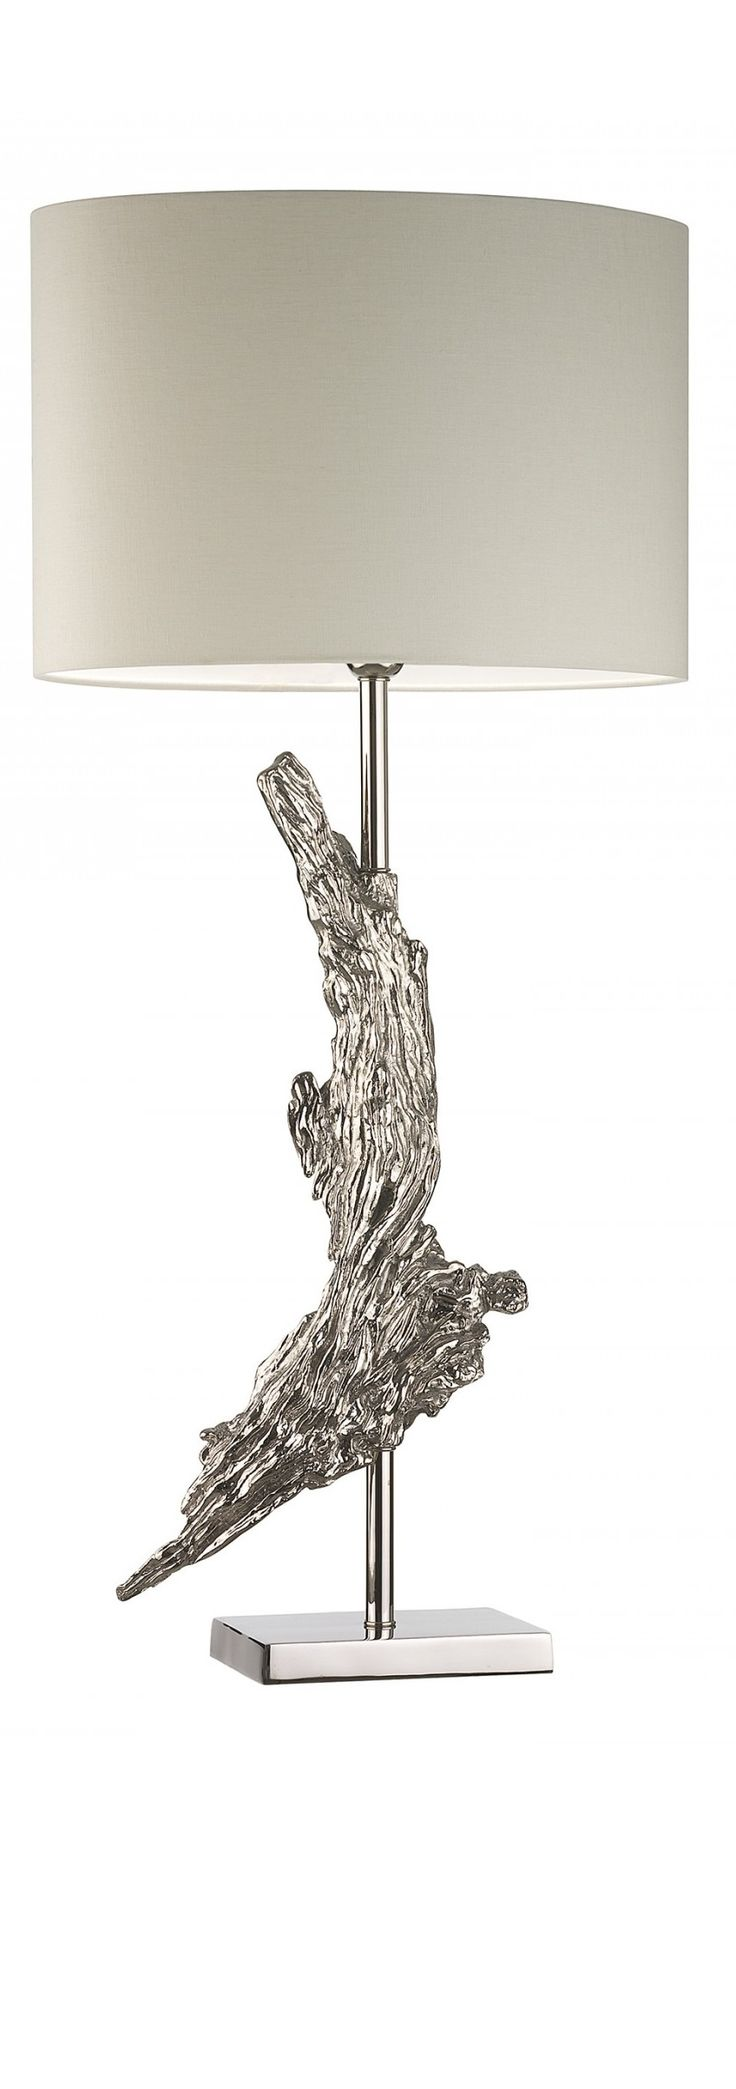 21 best silver lamp images on pinterest silver lamp for Table induction 71 x 52